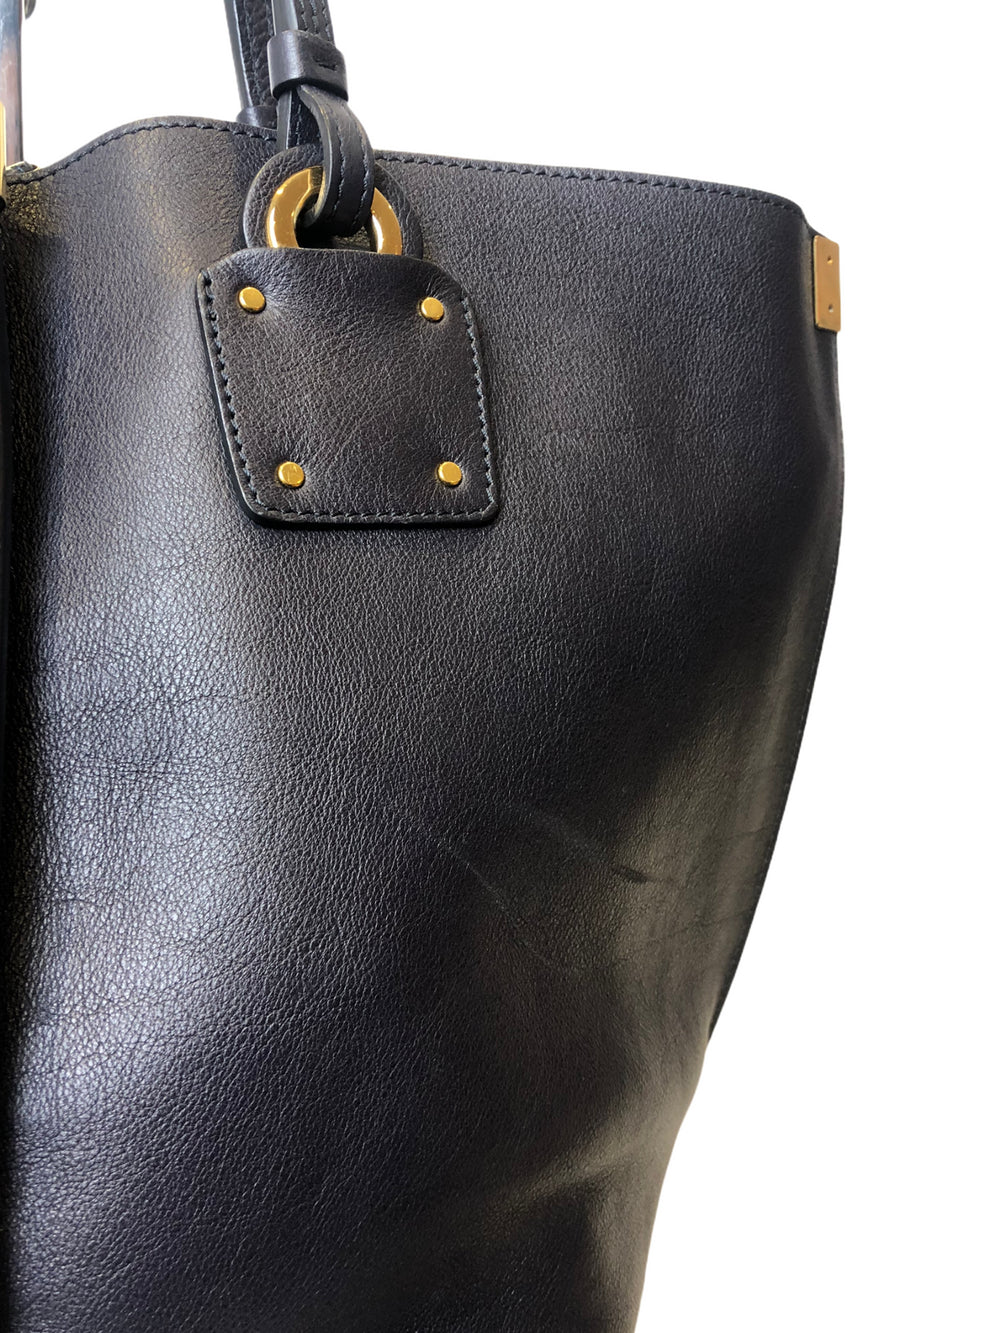 Chloé Navy Leather Logo Print Tote - As Seen on Instagram 10/1/21